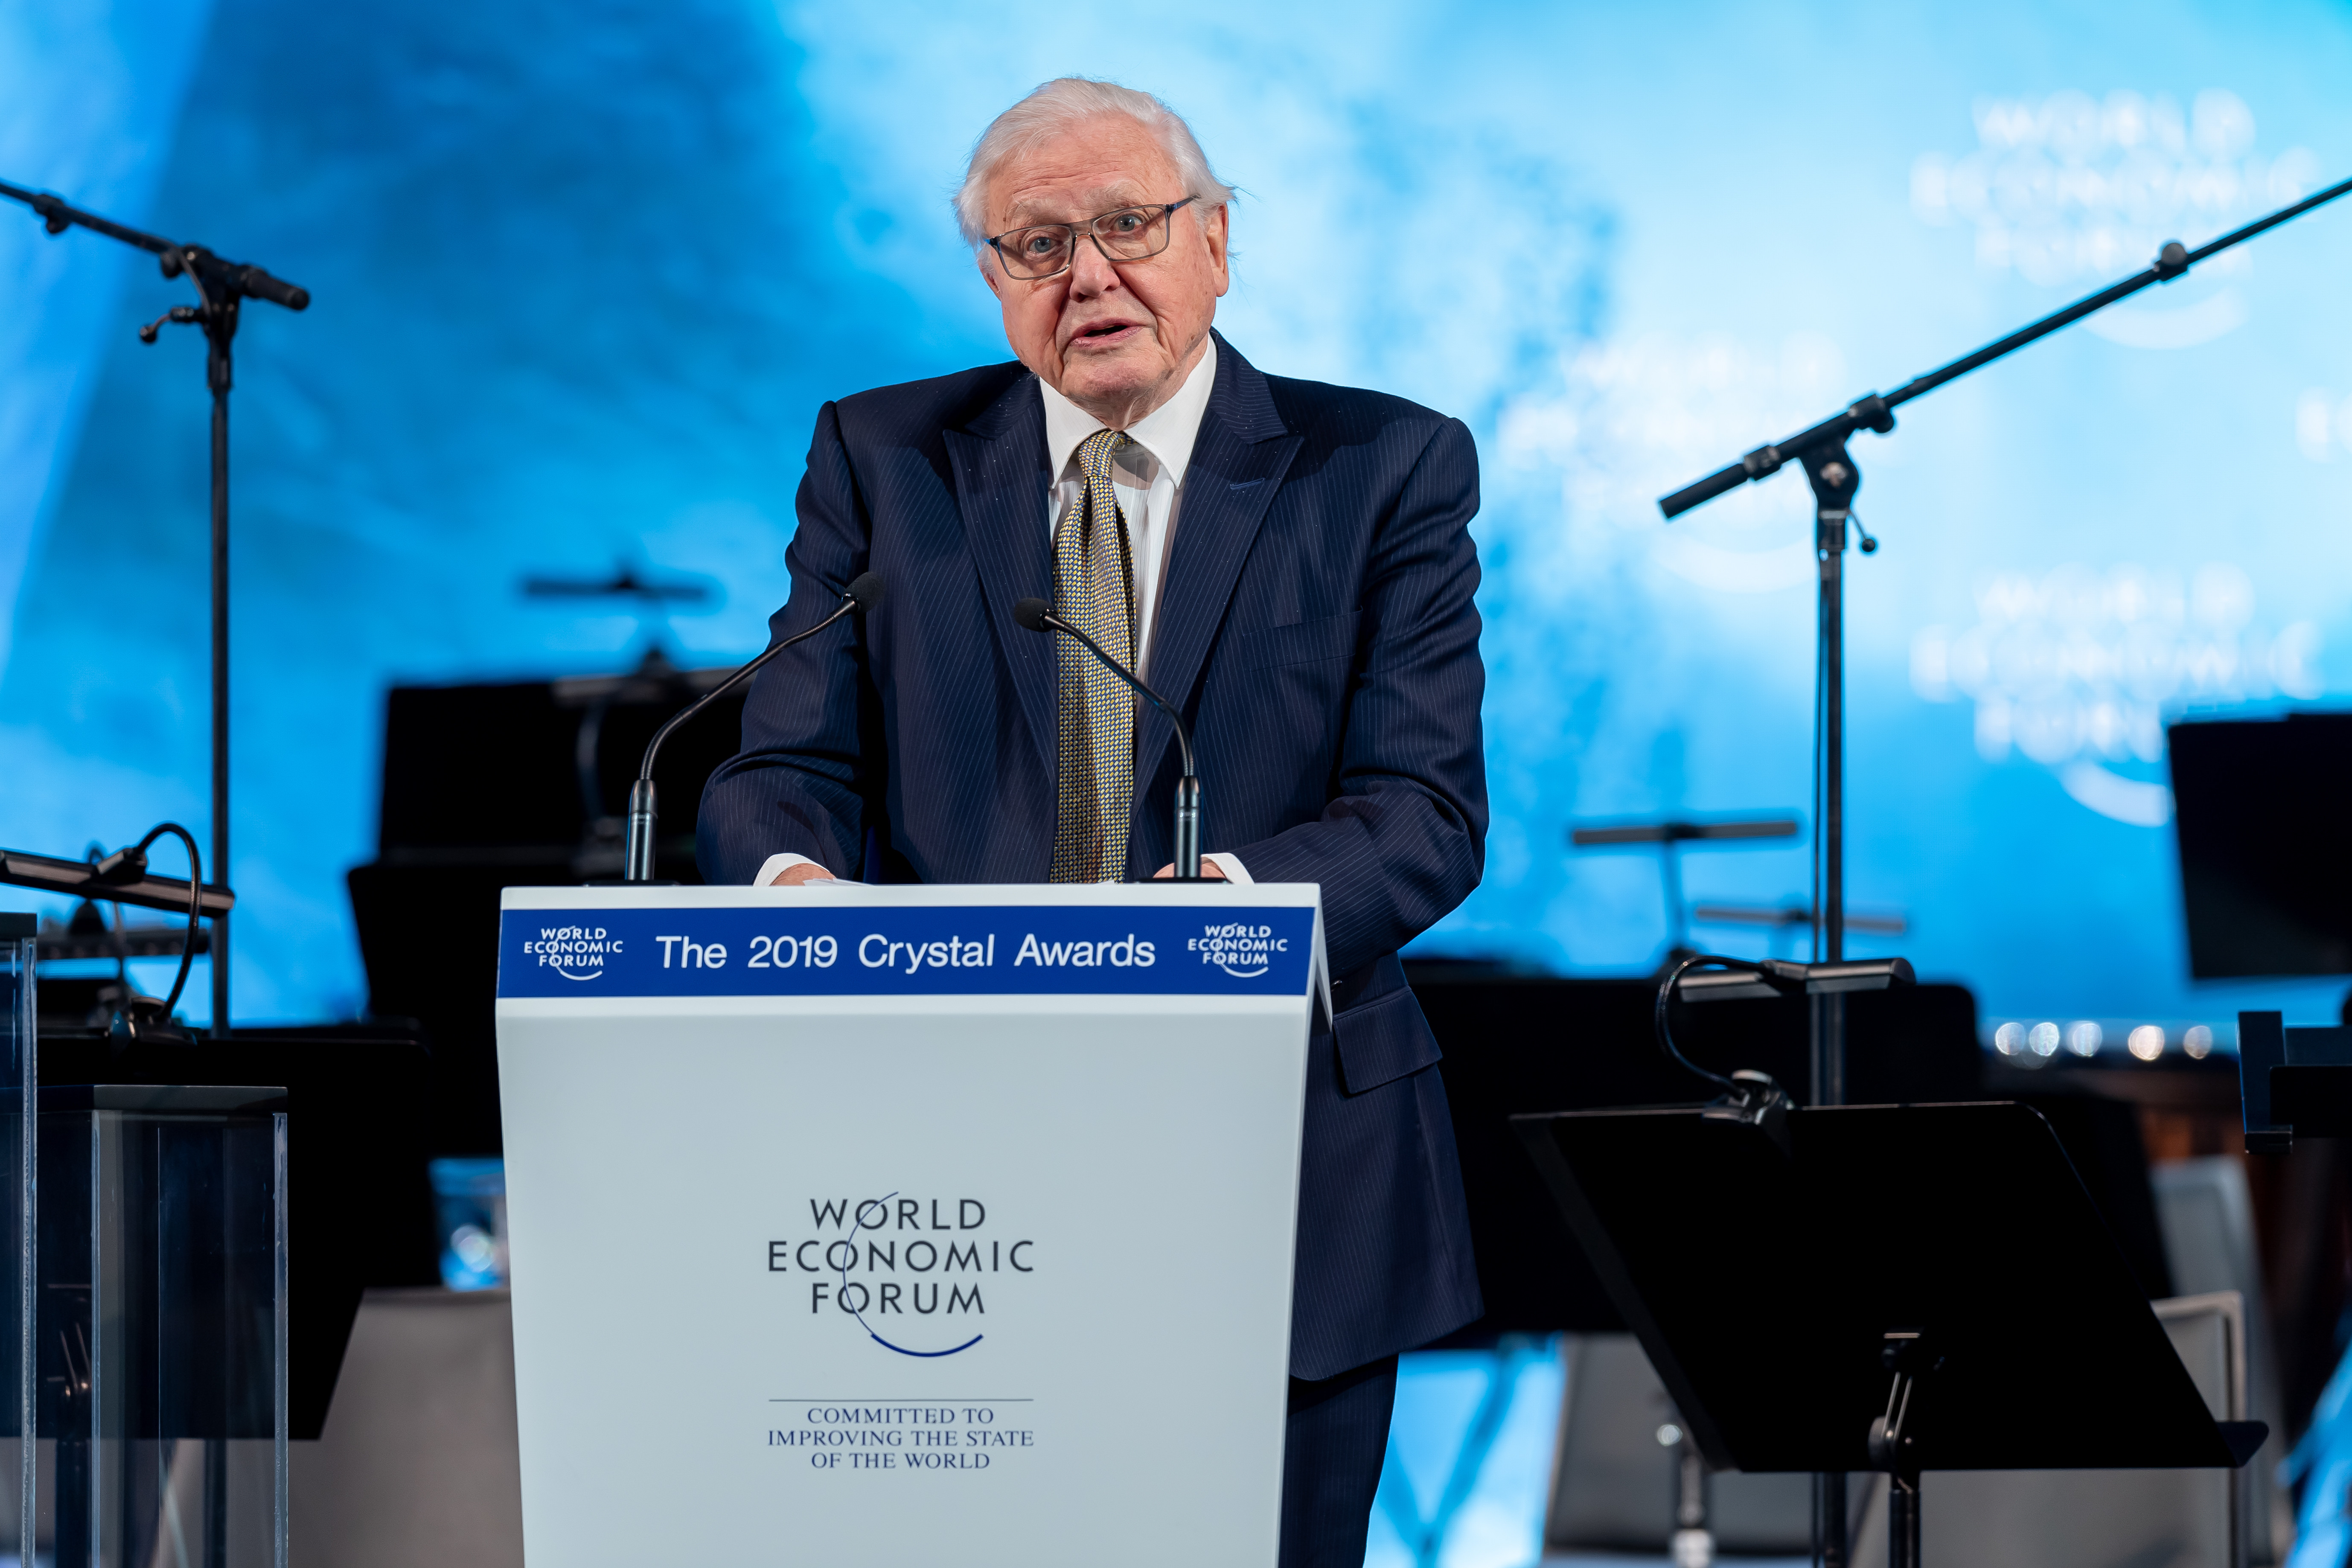 "Sir David Attenborough, Broadcaster and Naturalist, David Attenborough, United Kingdom; Cultural Leader speaking during the Session ""The 25th Crystal Awards"" at the Annual Meeting 2019 of the World Economic Forum in Davos, January 21, 2019.Copyright by World Economic Forum / Sandra Blaser"